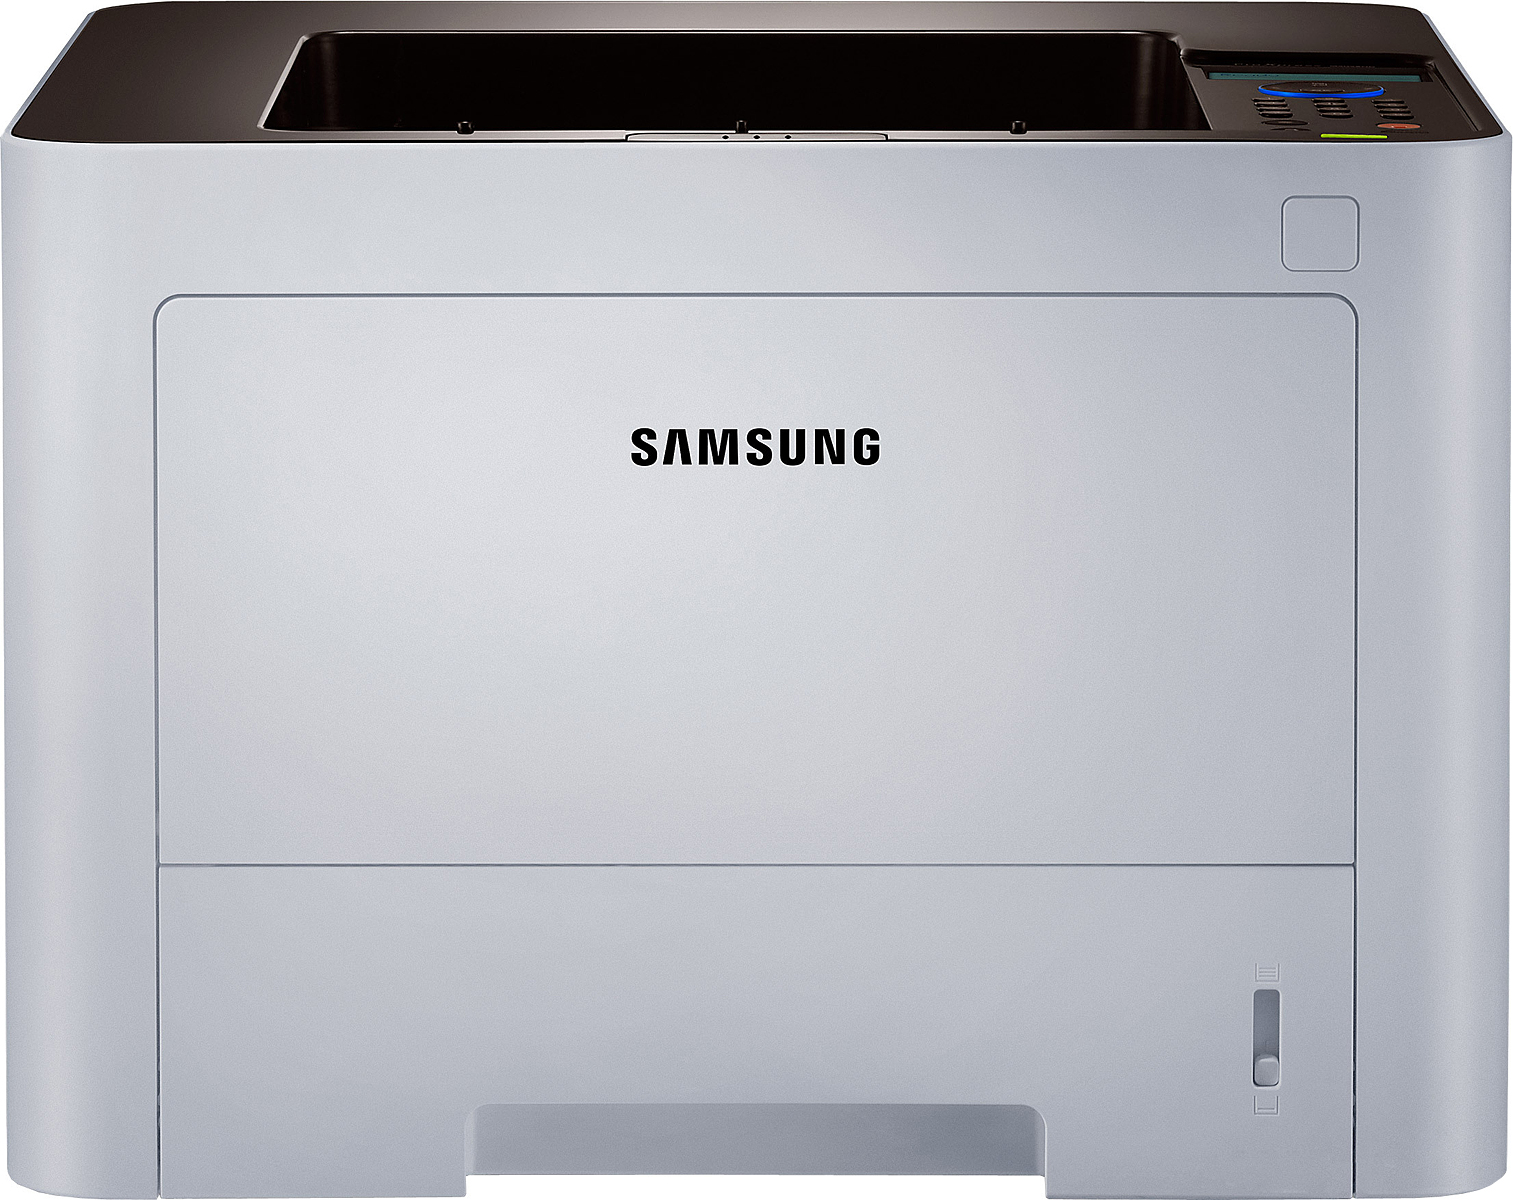 Samsung ProXpress SL-M4020ND лазерный принтер samsung sl m4020nd